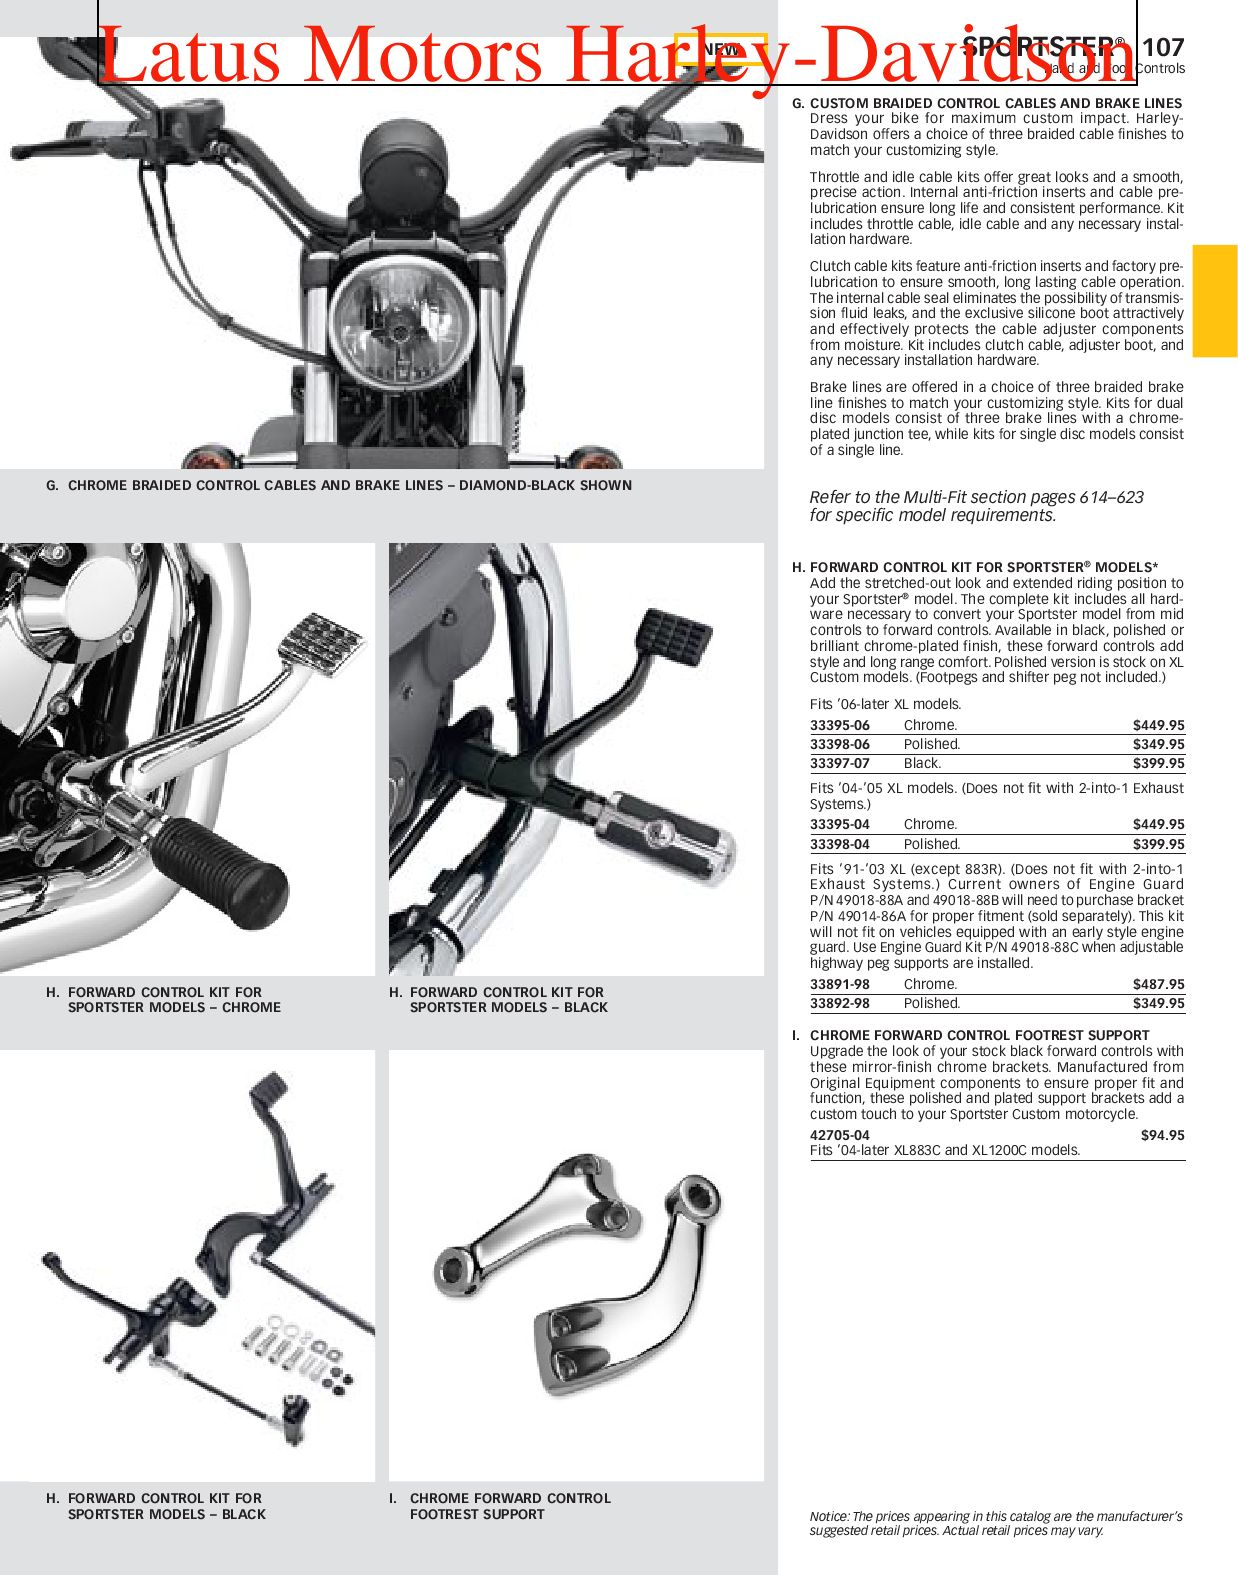 Harley-Davidson Sportster® Parts and Accessories Catalog